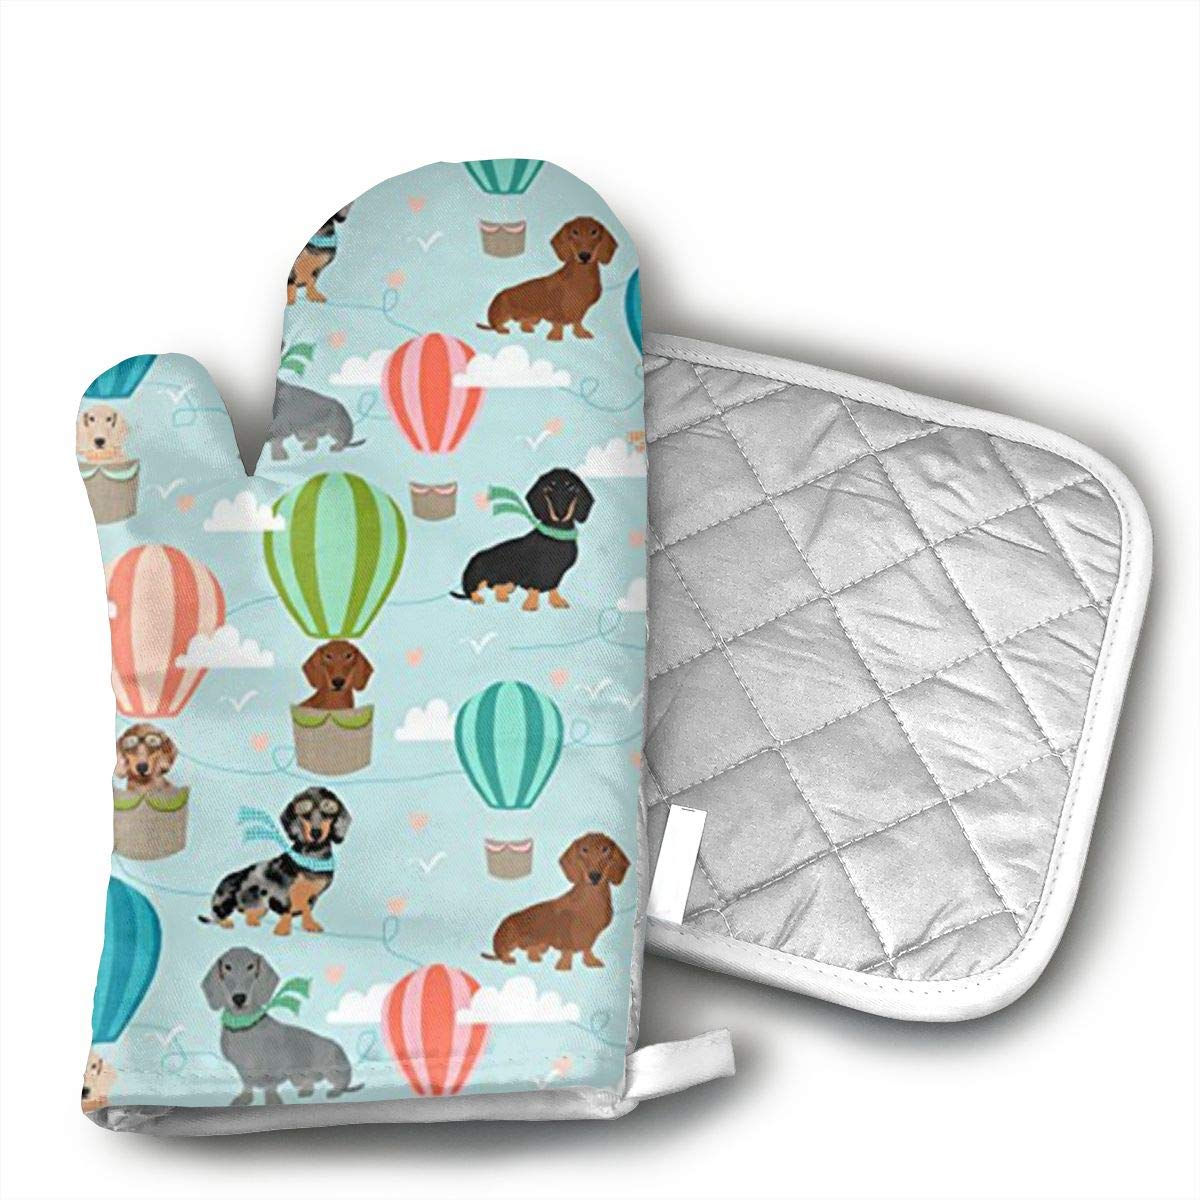 dgf Dachshund Hot Air Balloon Set of Oven Mitt and Pot Holder or Oven Gloves-528% Cotton, High Heat Resistance, Machine Washable High heat resistant polyester filling for Thanks Giving, Christmas